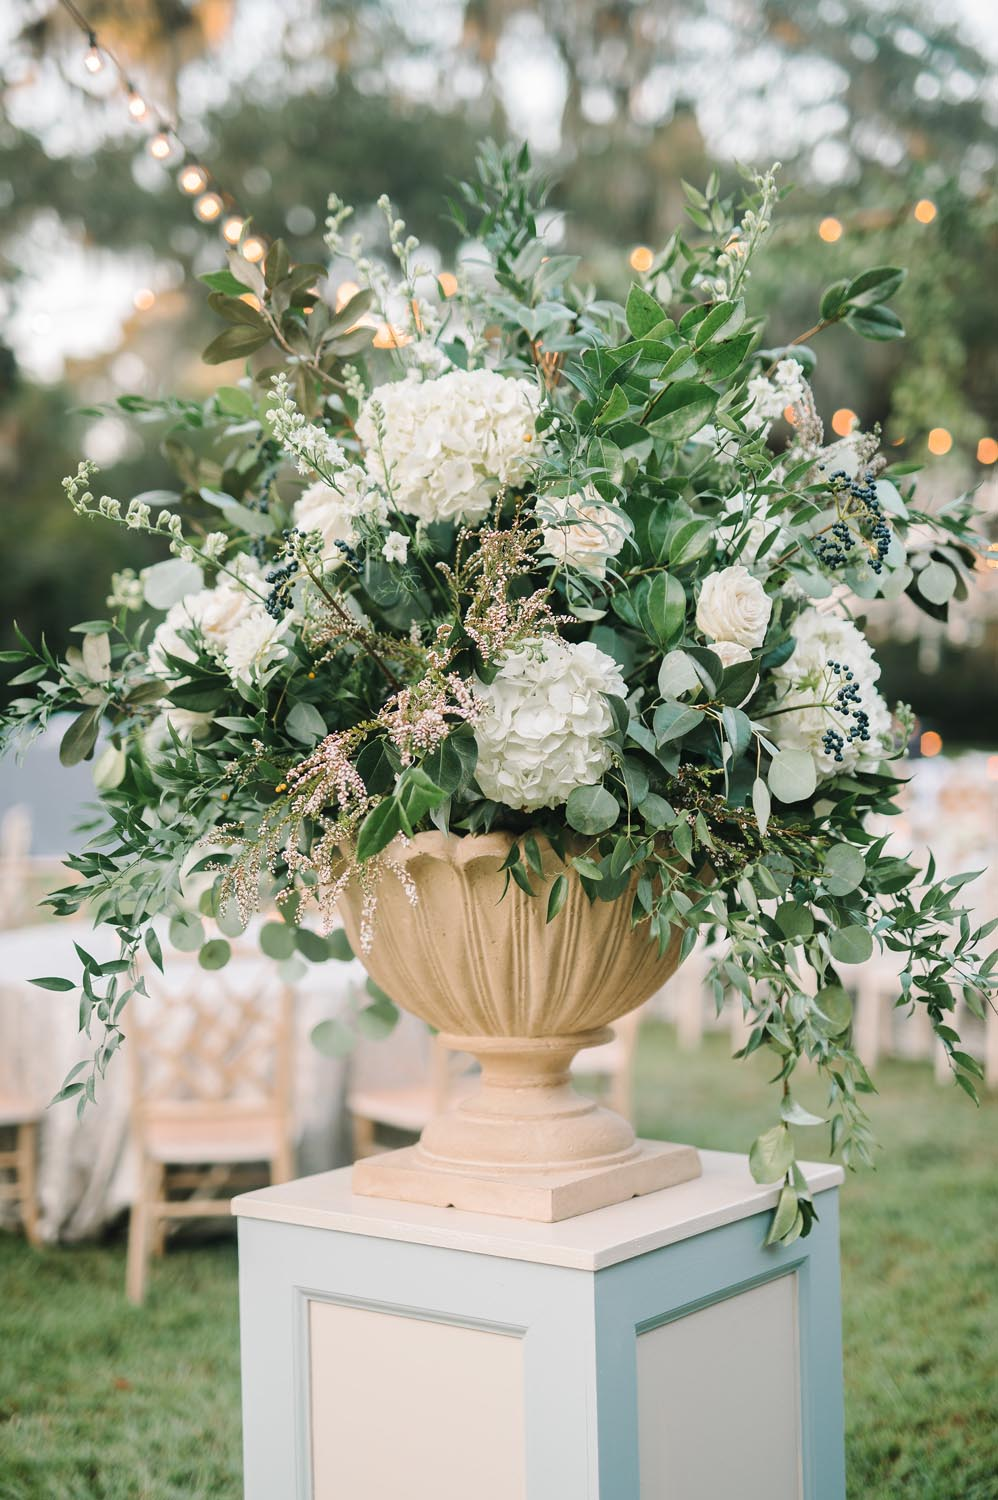 Wedding planning and design by A Charleston Bride. They were influenced by the couple's ties to both New Orleans and Texas and used touches of both states to create this outdoor, glam wedding.